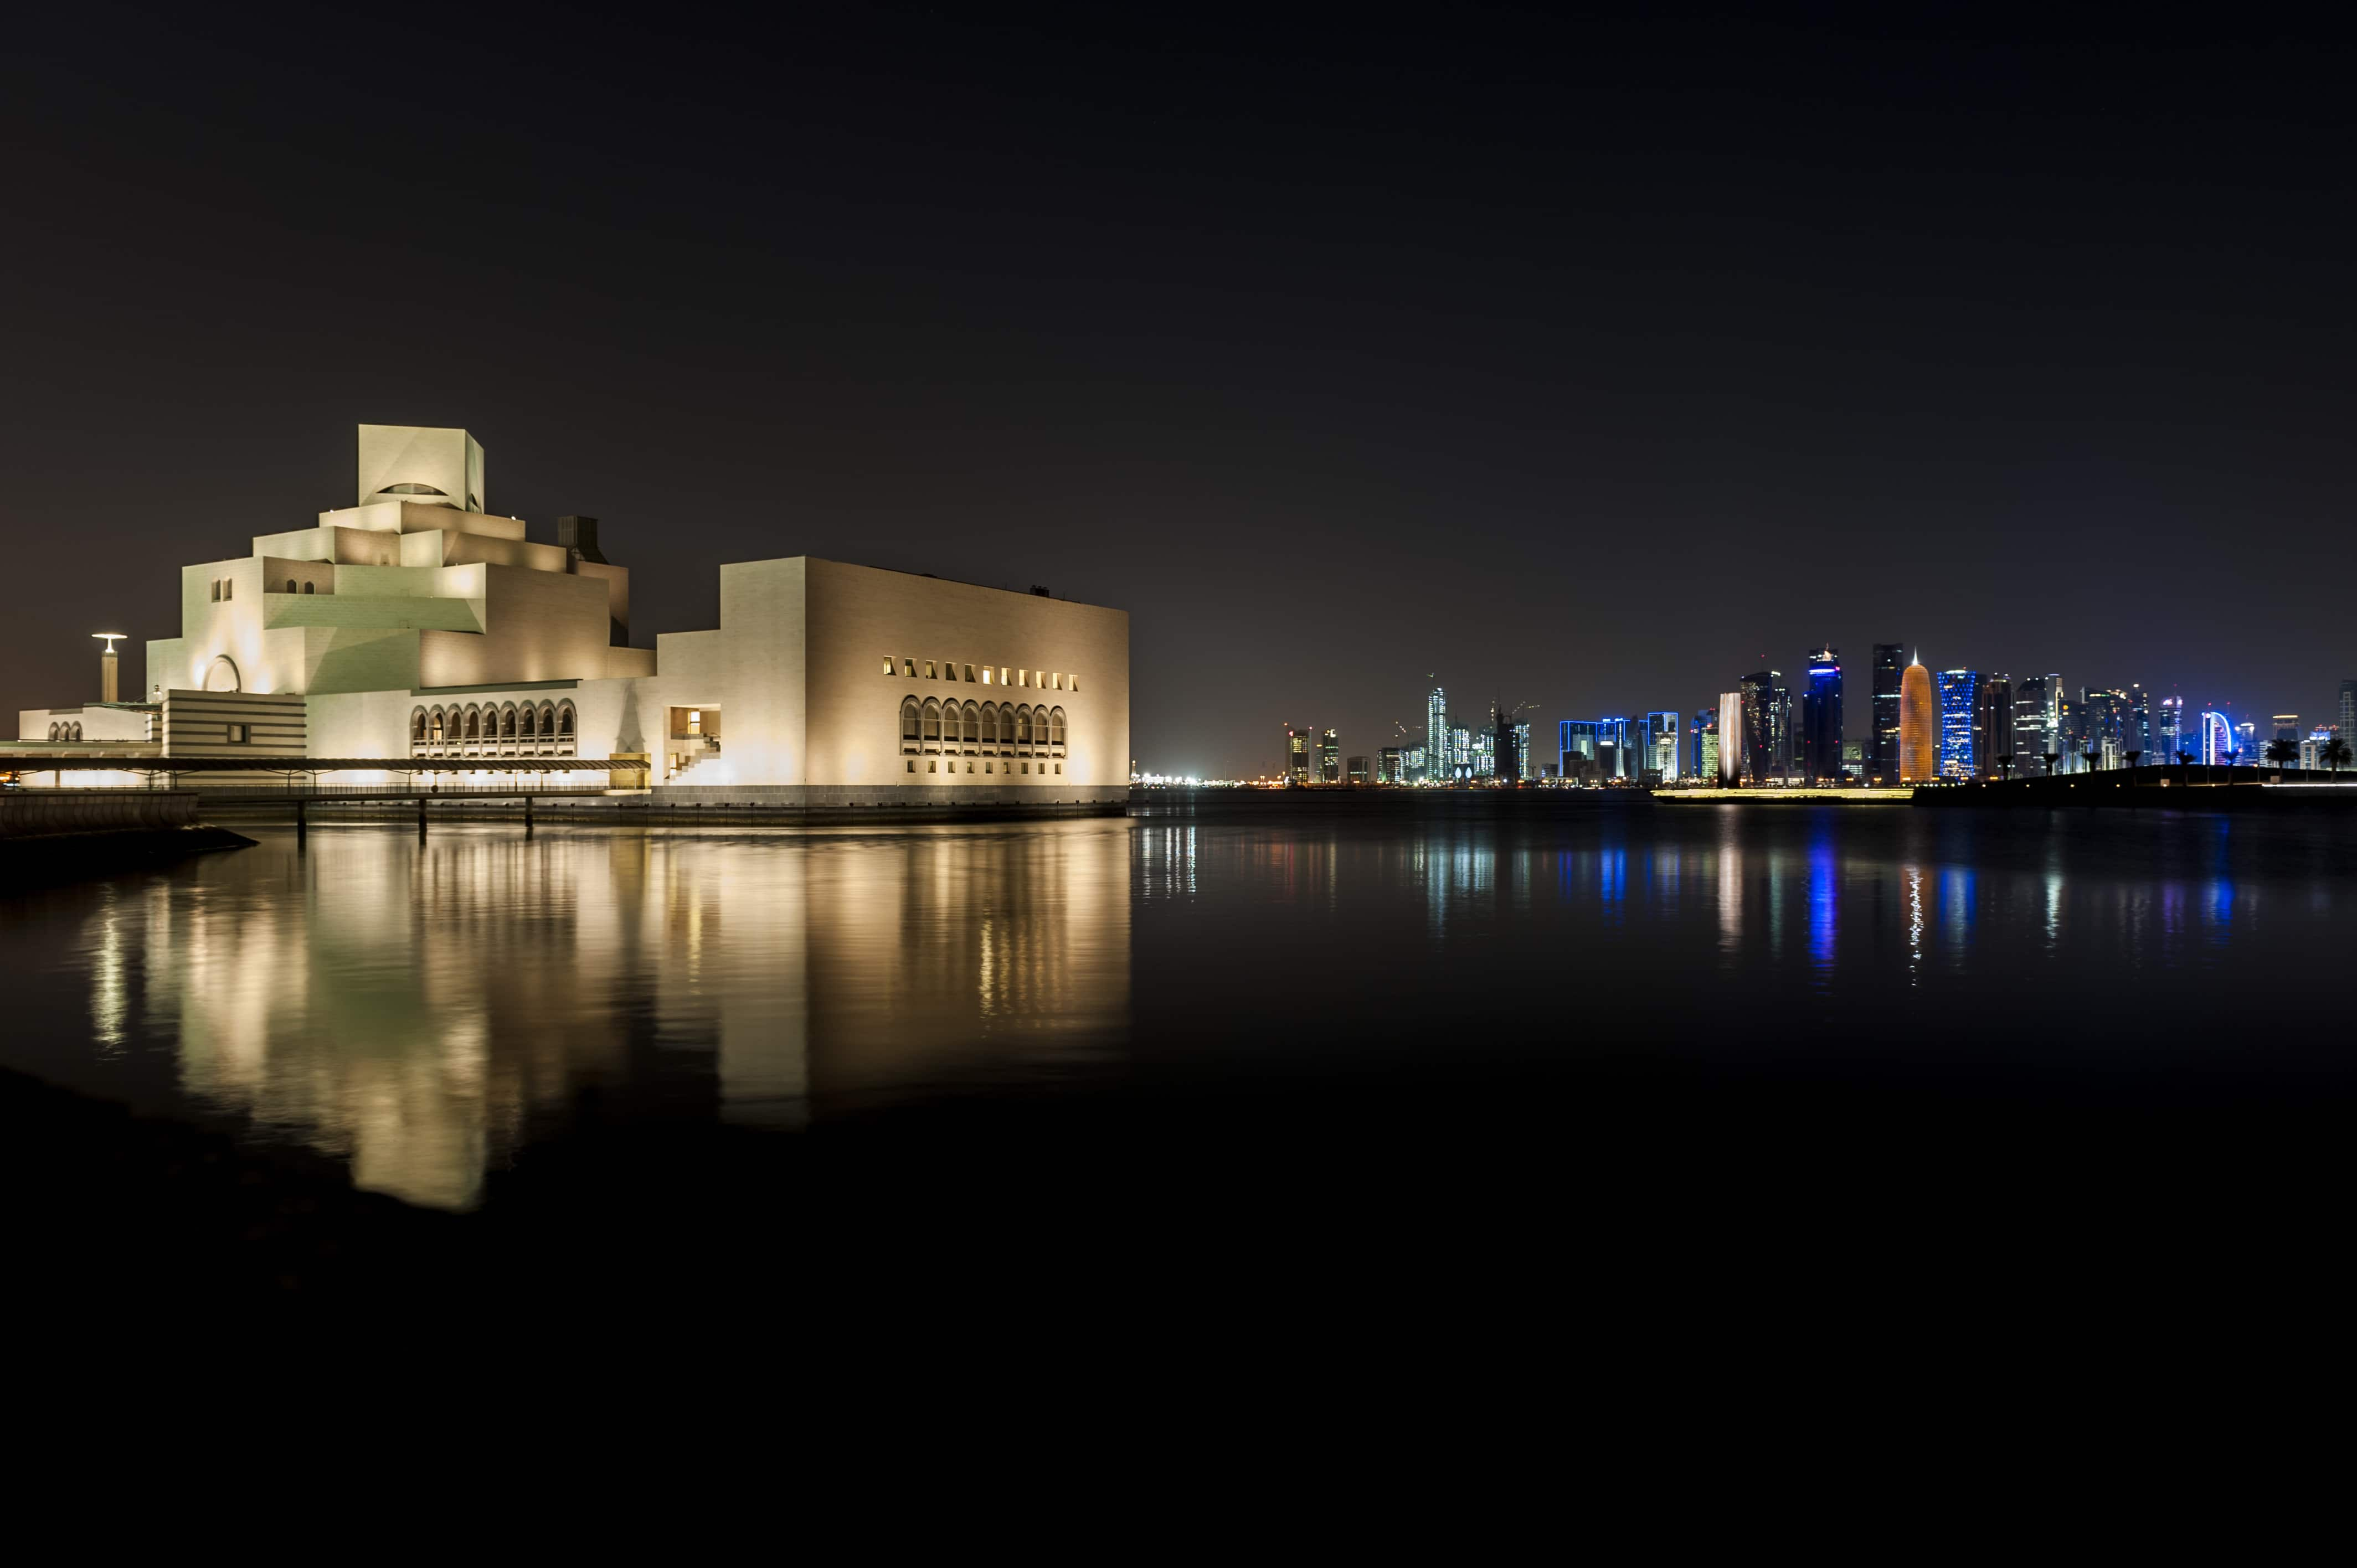 Night shot of the Museum of Islamic Art with reflection and the Doha skyline in the background.